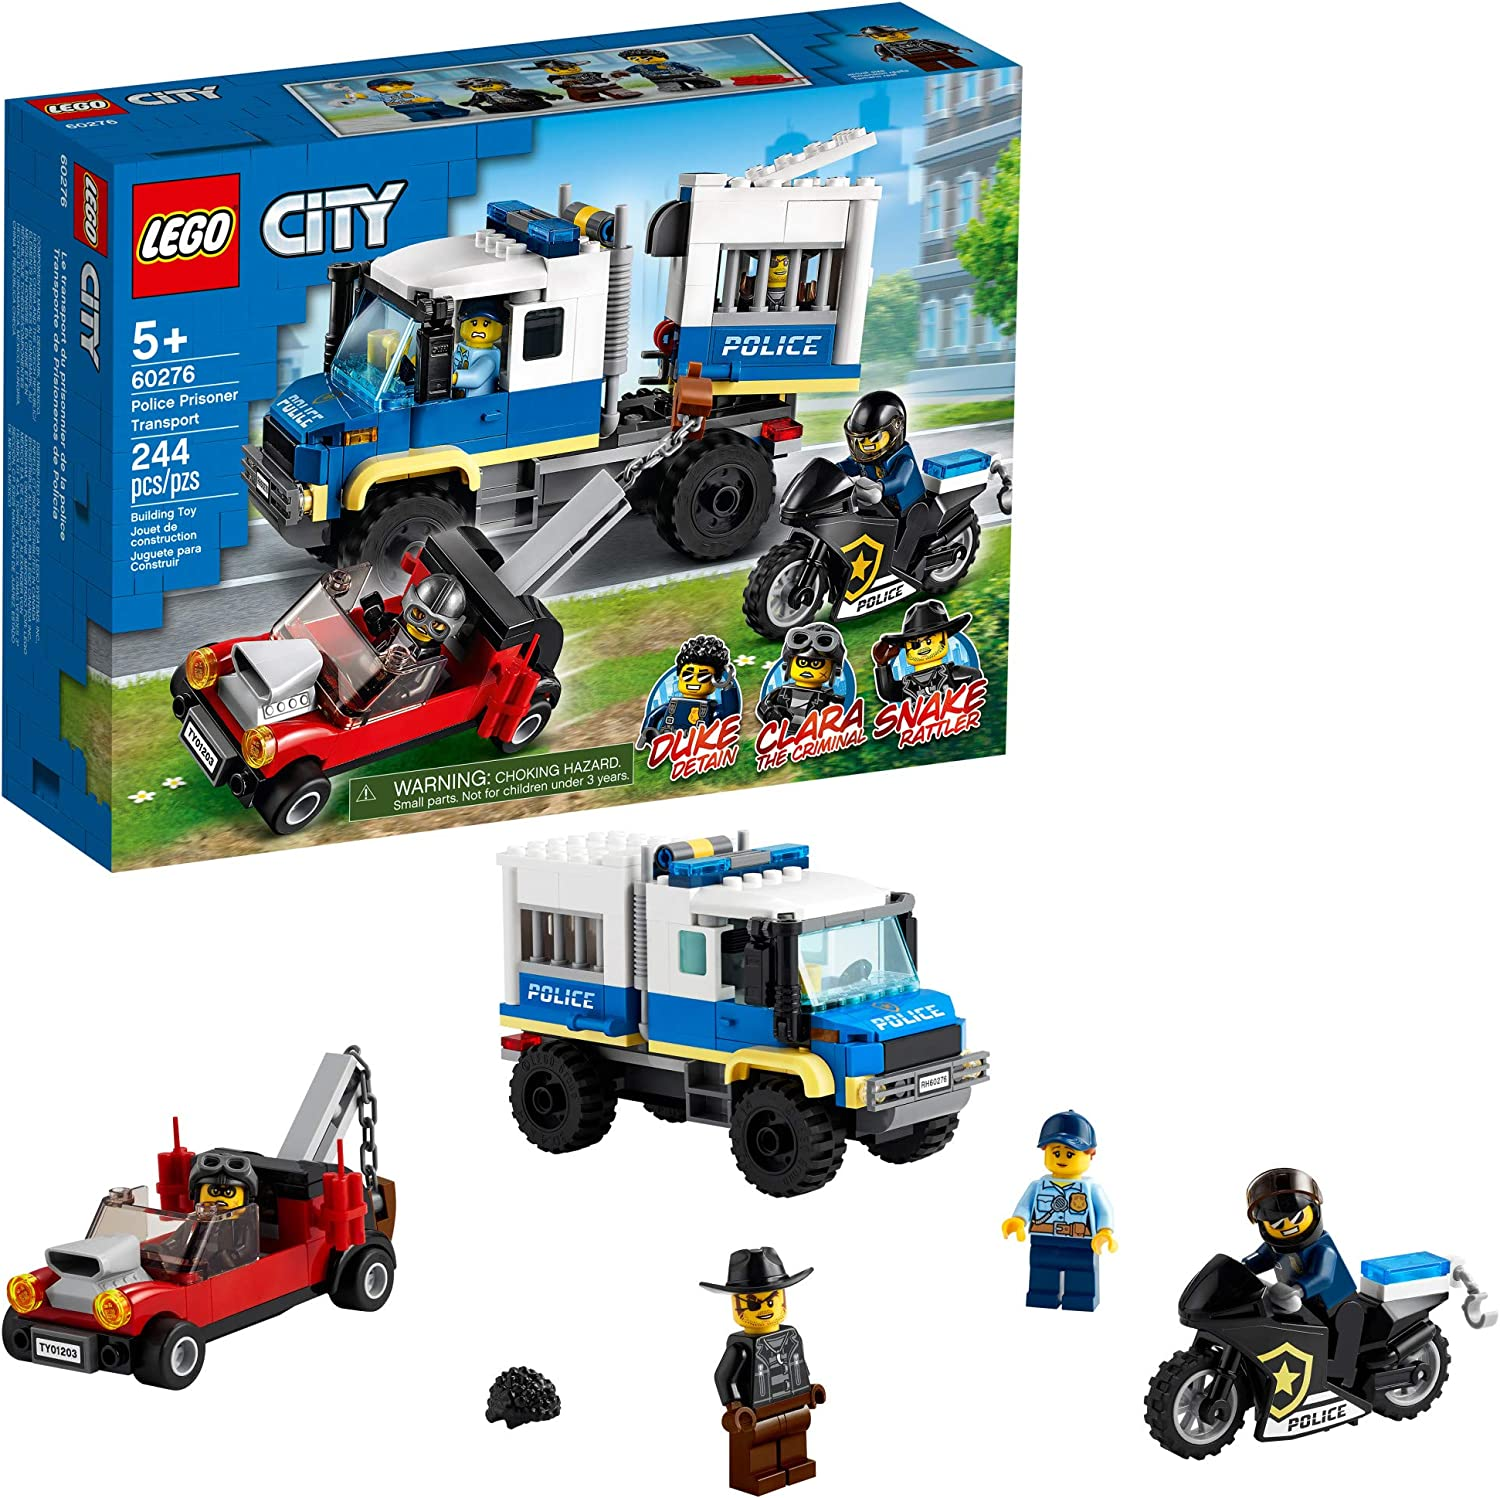 LEGO City Police Prisoner Transport 60276 Building Kit; Cool Police Toy for Kids, New 2021 (244 Pieces)